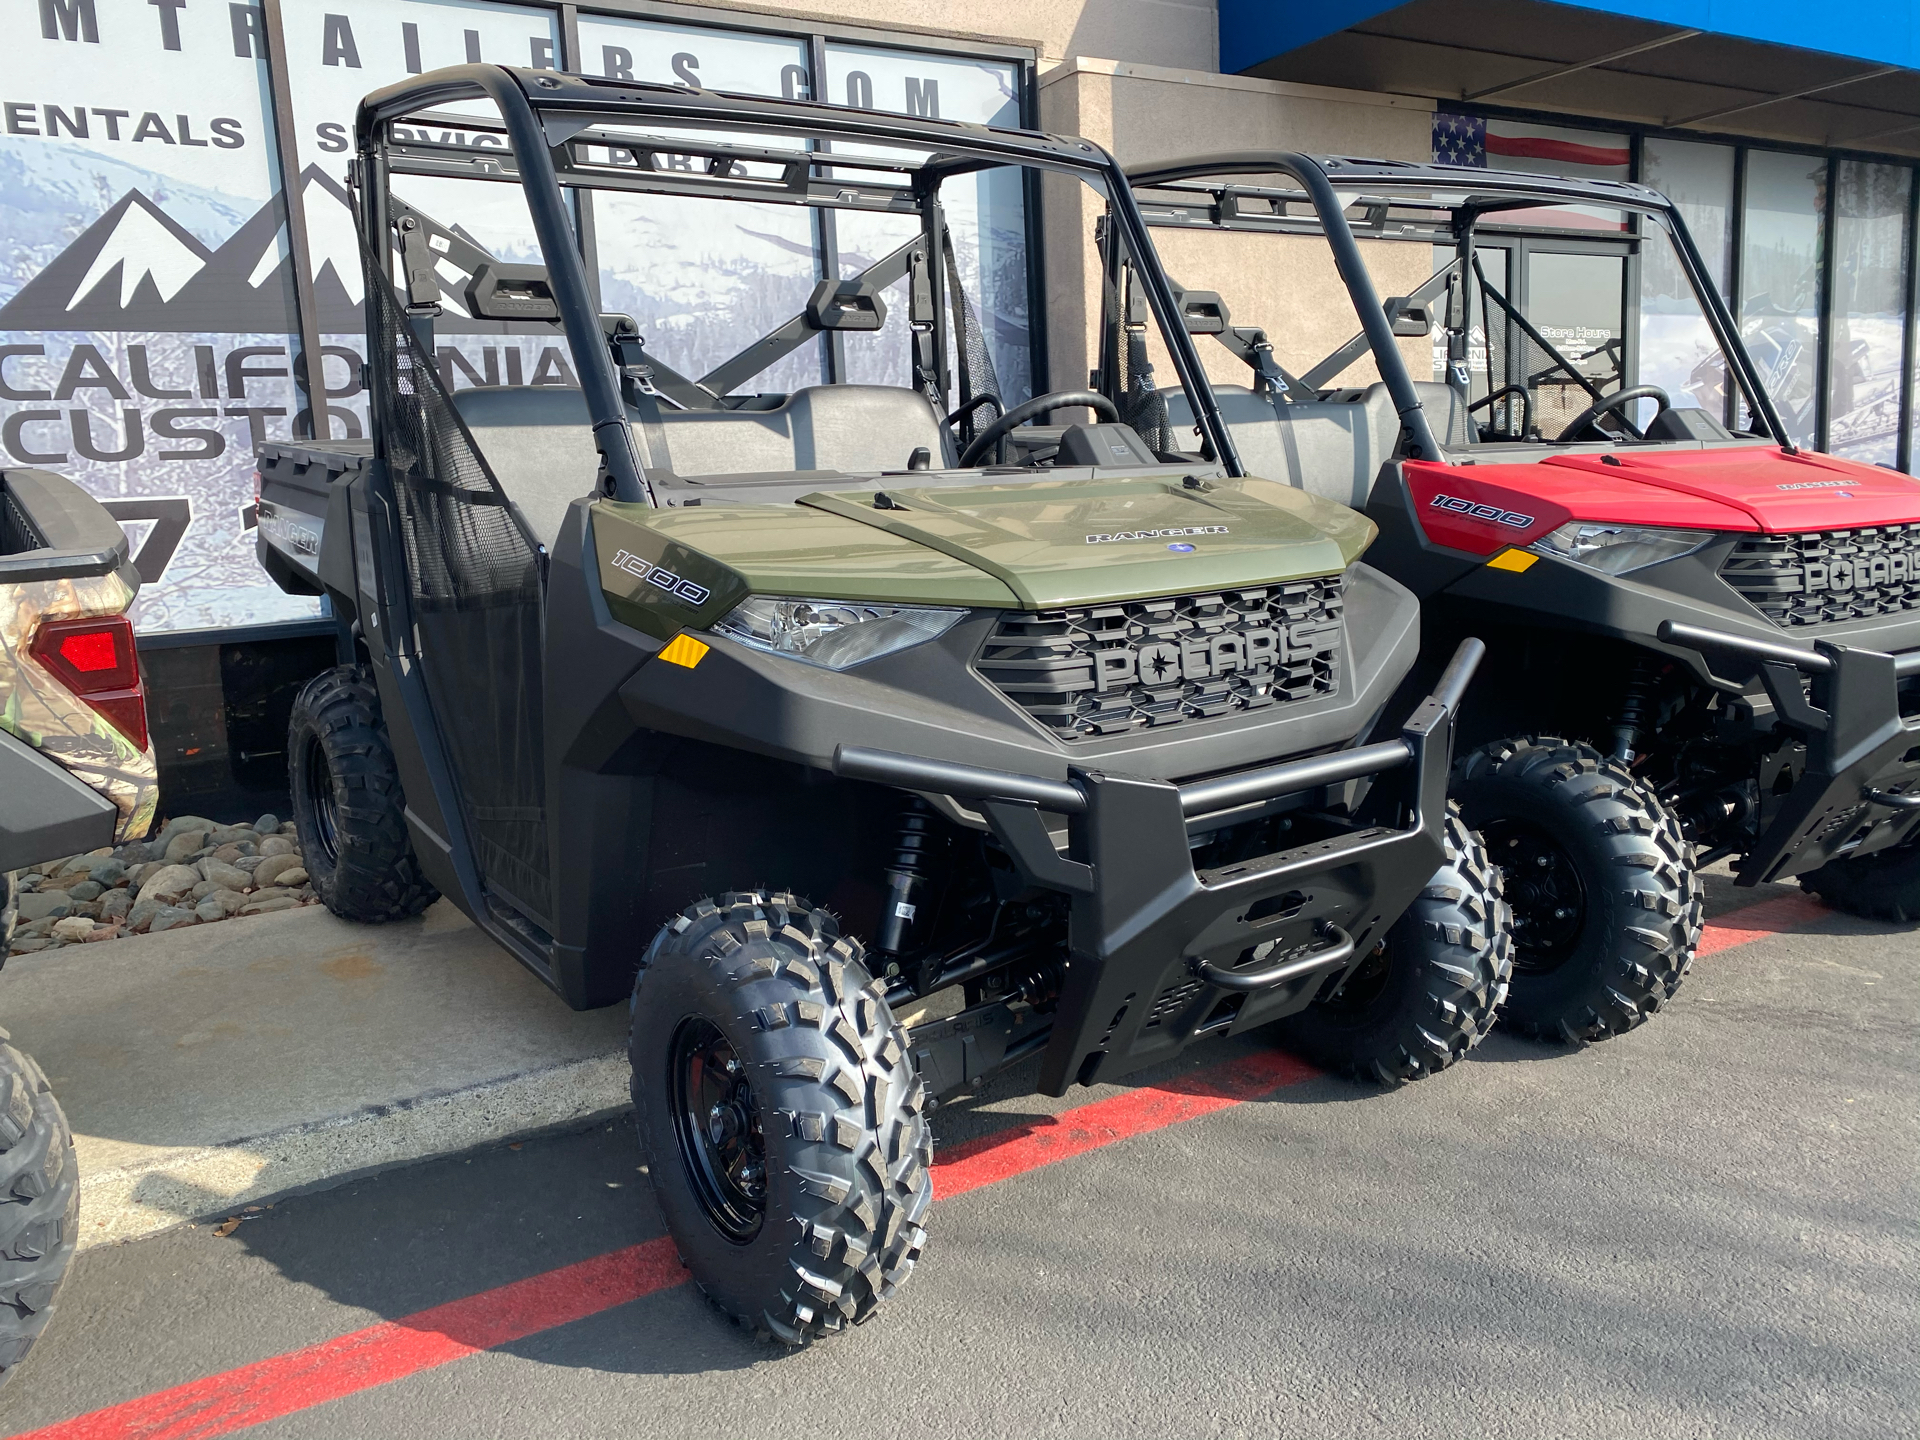 2021 Polaris Ranger 1000 EPS in Elk Grove, California - Photo 16